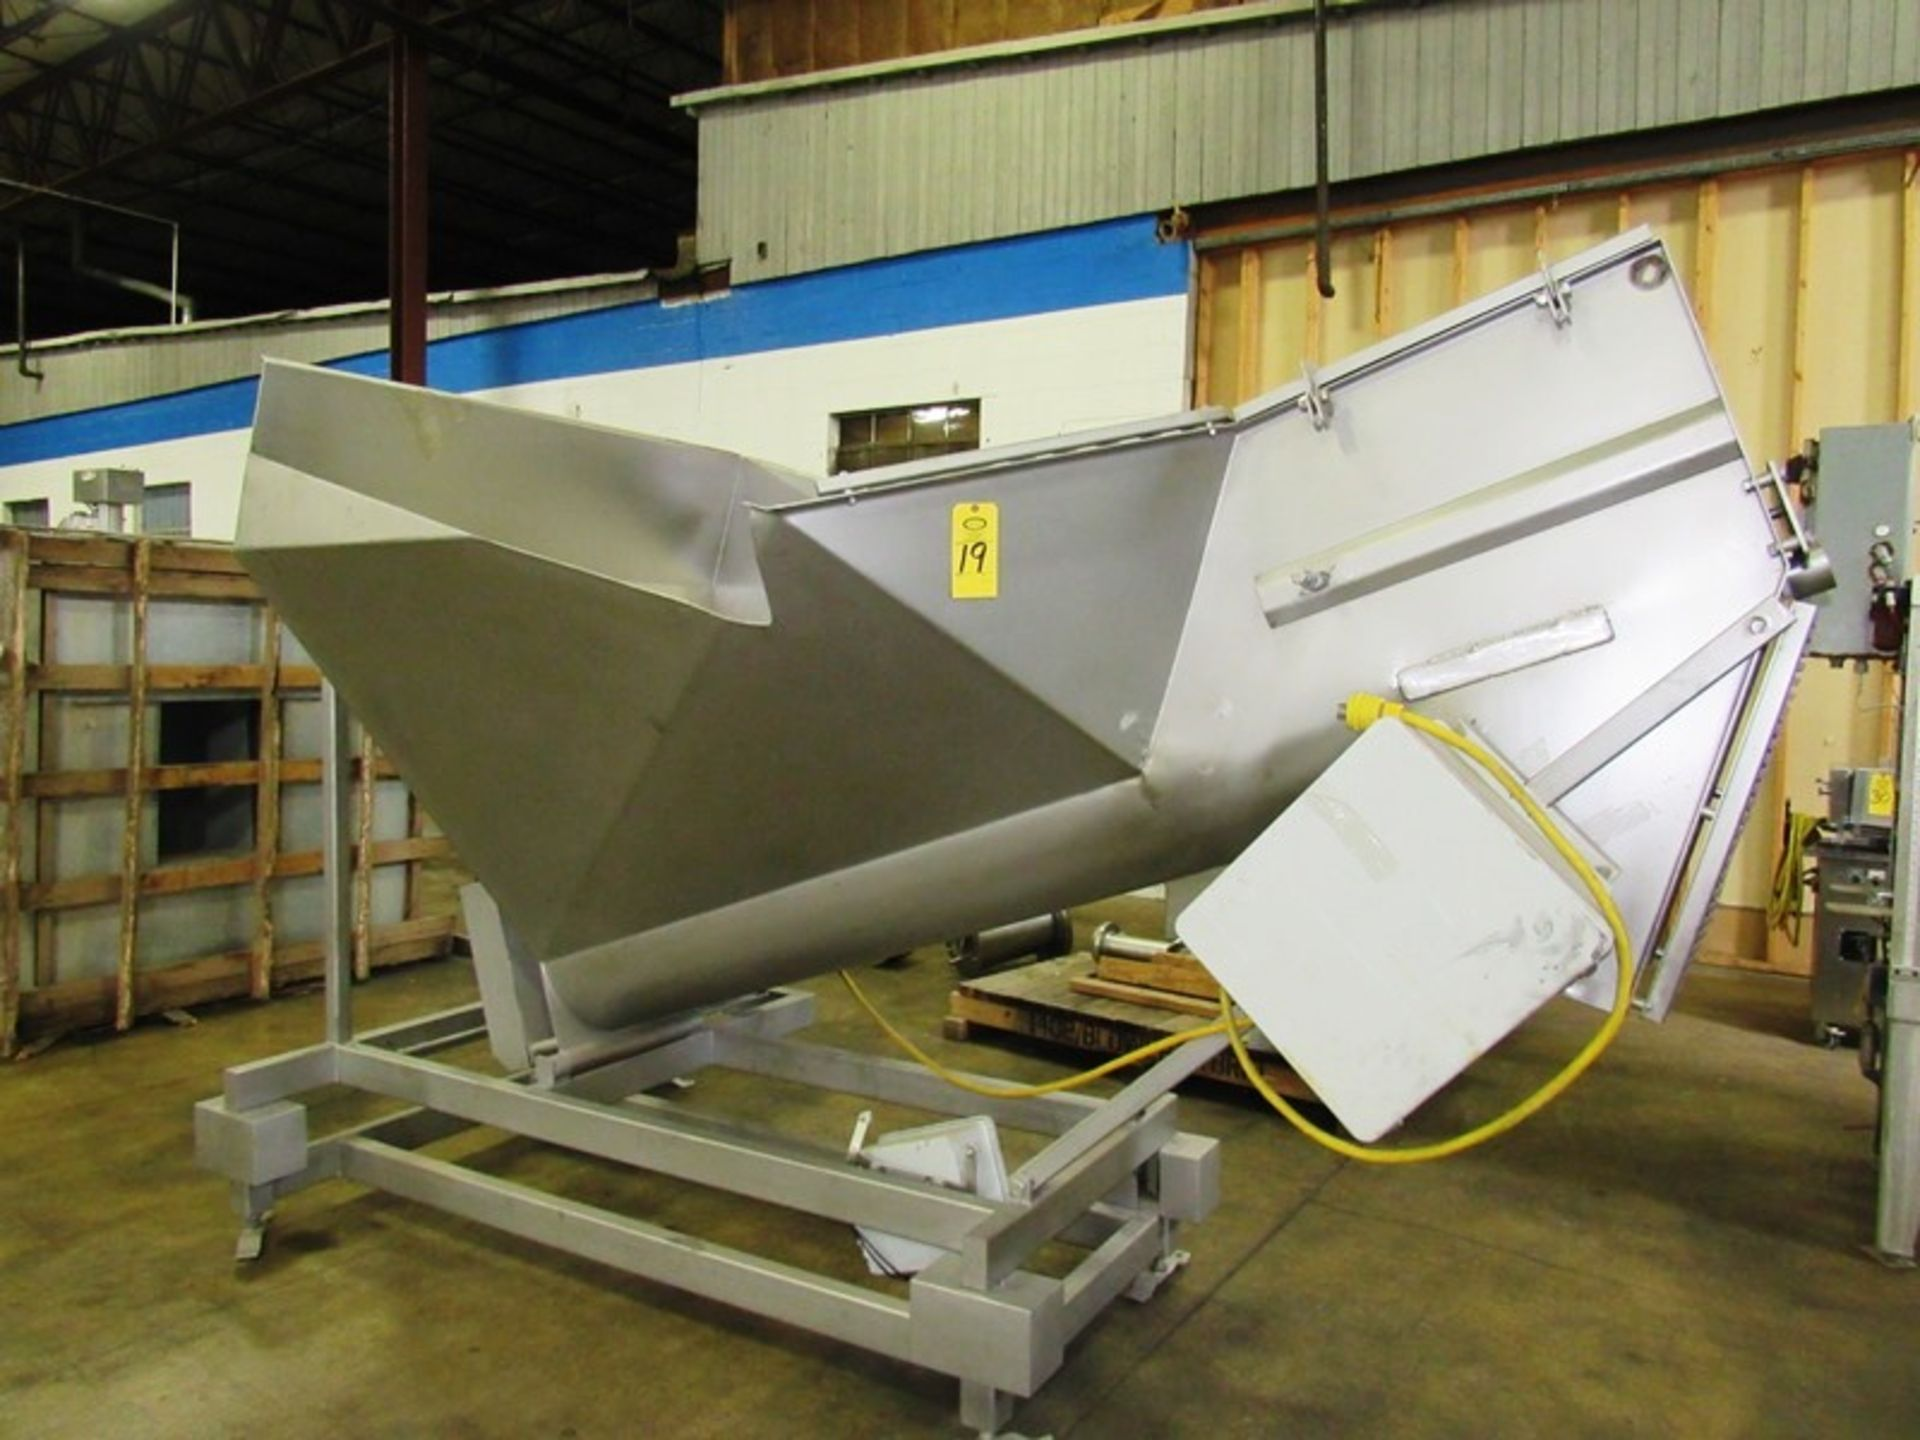 """Stainless Steel Screw Loader, 16"""" Dia. X 8' L stainless steel screw, 5' W X 5' L load hopper, 15 h. - Image 3 of 7"""